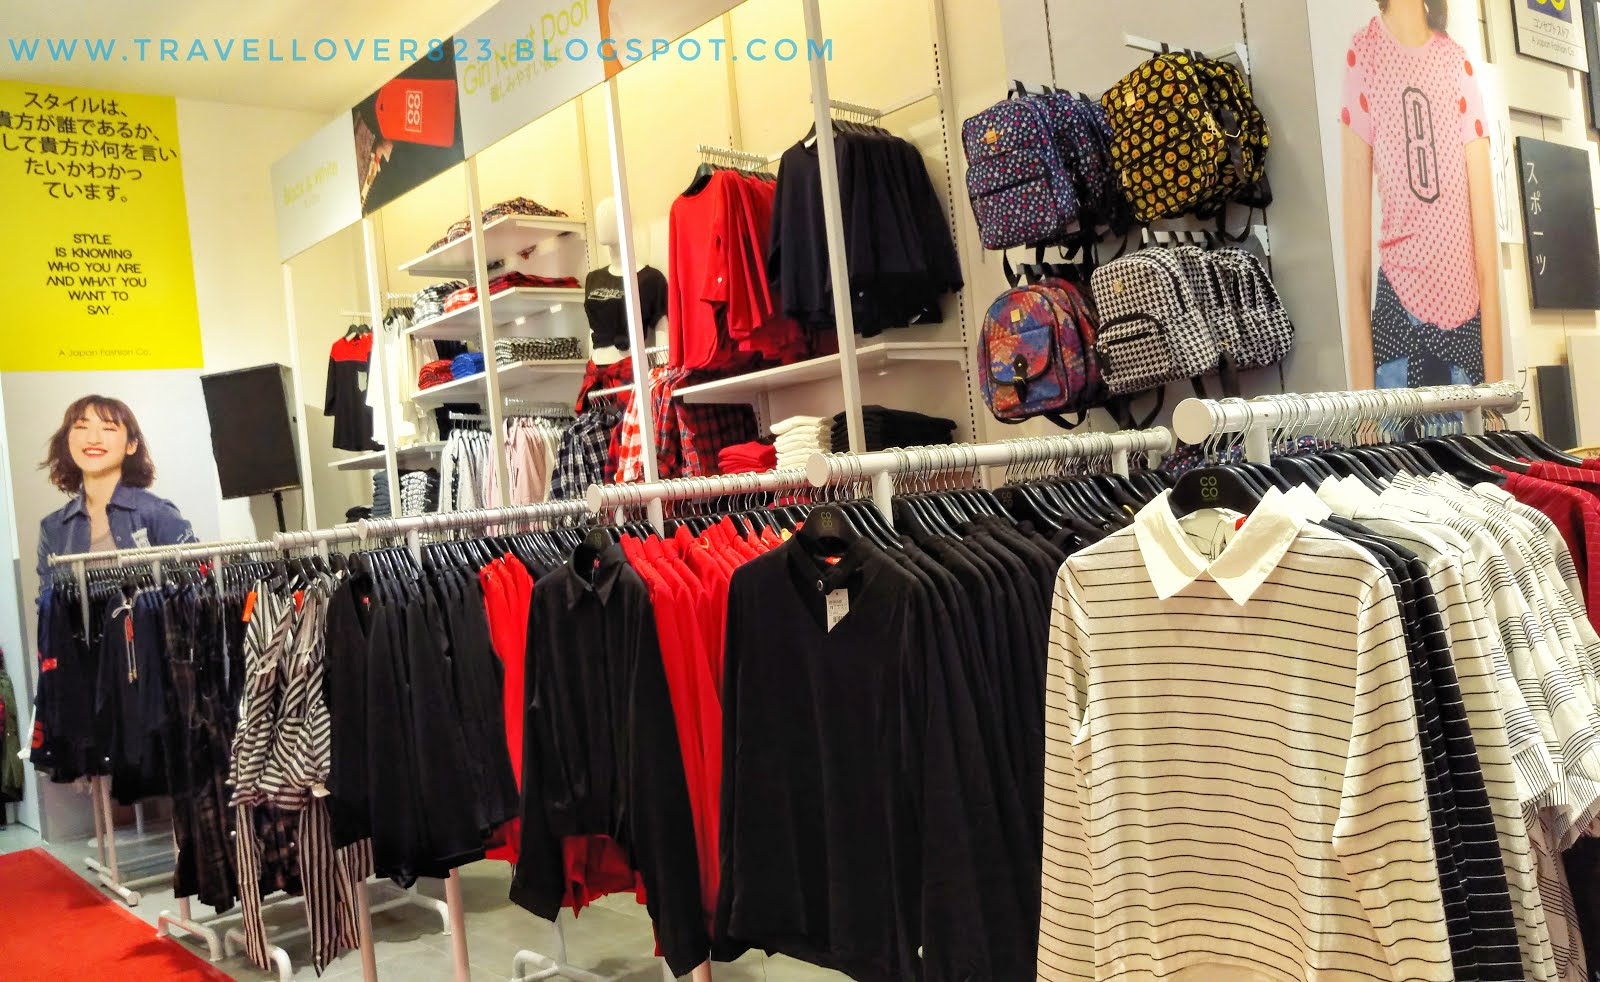 Coco store clothing